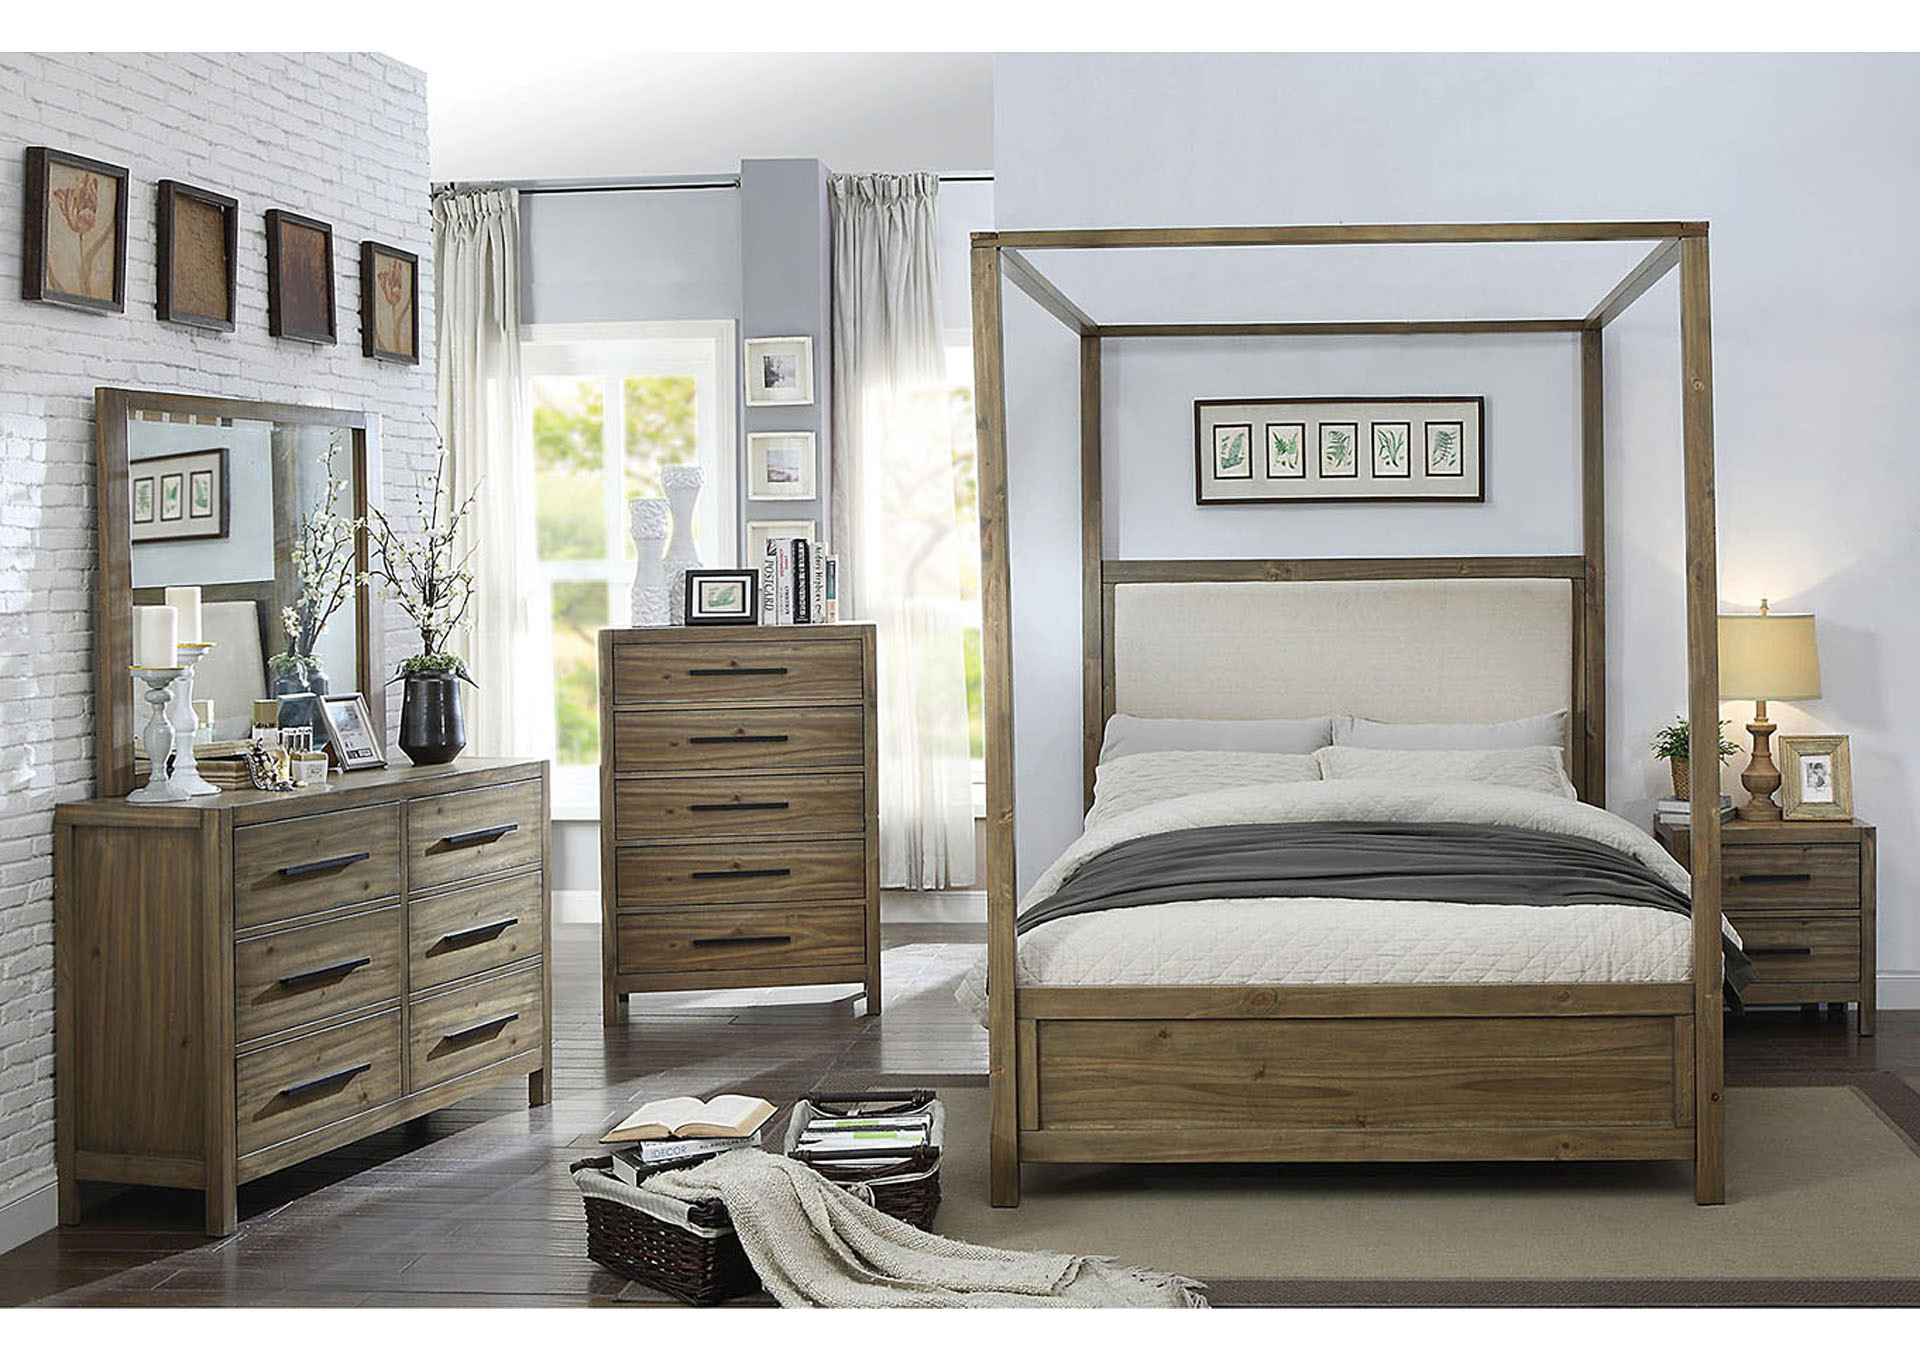 Bedroom Furniture In Baton Rouge Html Car Design Today